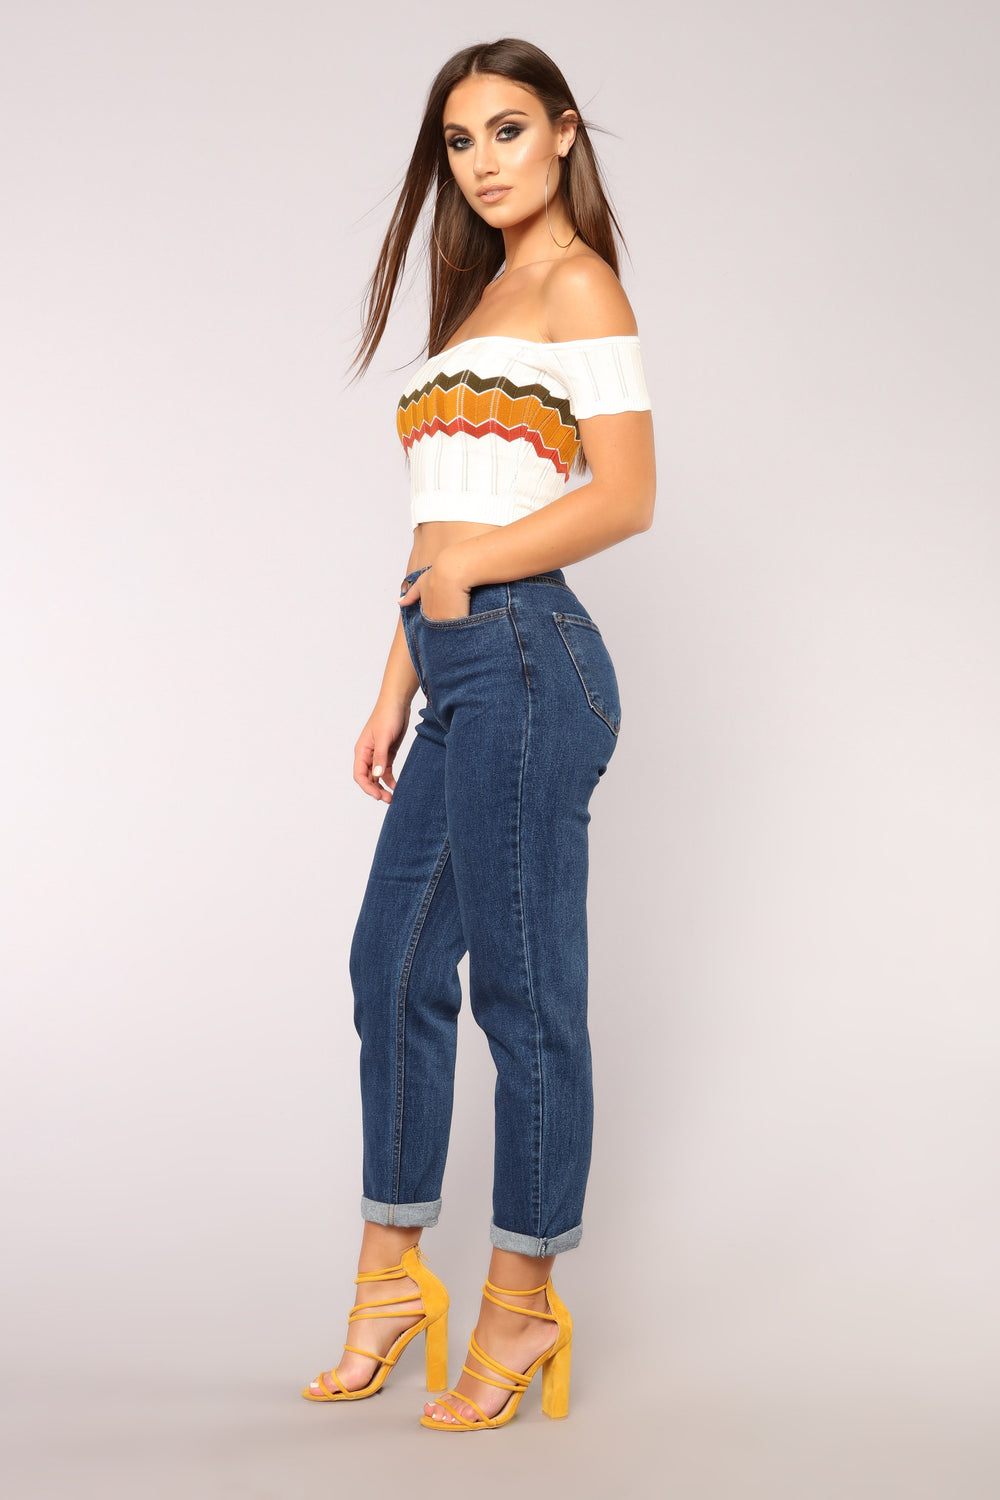 Groove It Crop Top - White/Olive